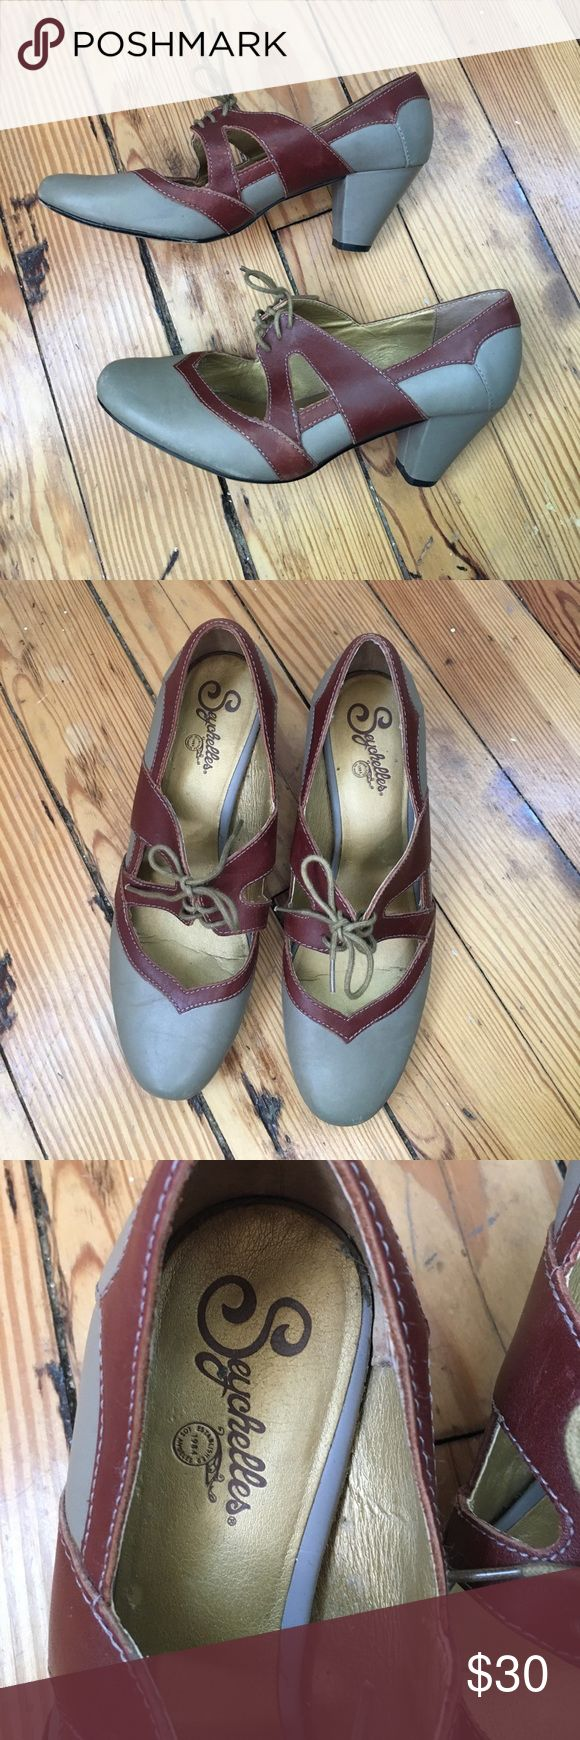 Seychelles gray and maroon pumps tie Vintage style pumps with chunky heels, round toe and tie detail. Pretty maroon and gray. Some scuffs and wear pictured Seychelles Shoes Heels